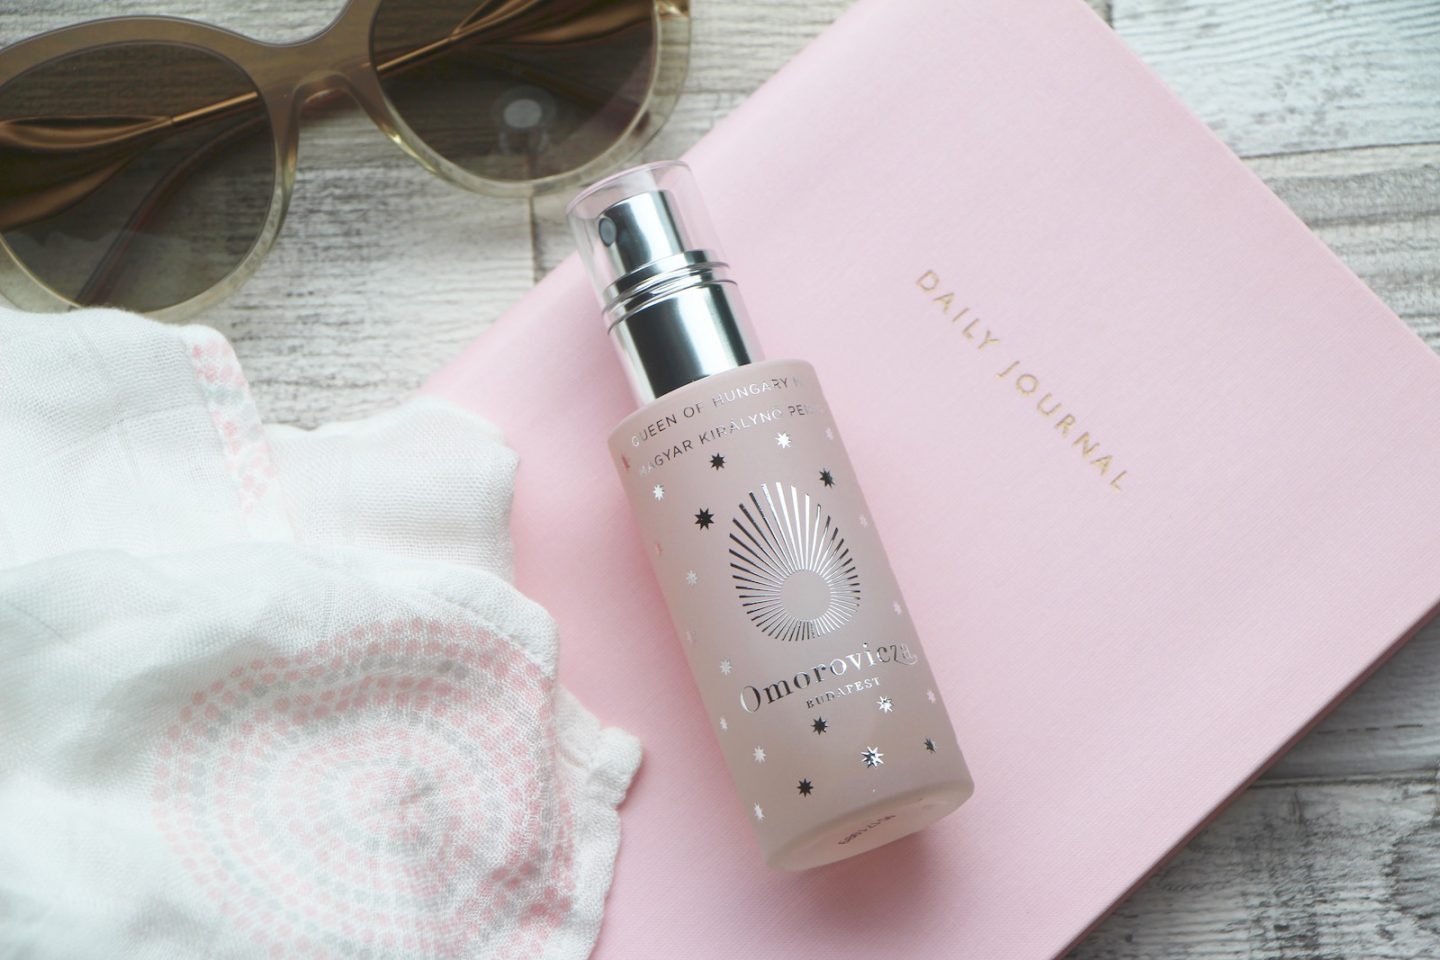 Omorovicza Limited Edition Queen of Hungary Mist review